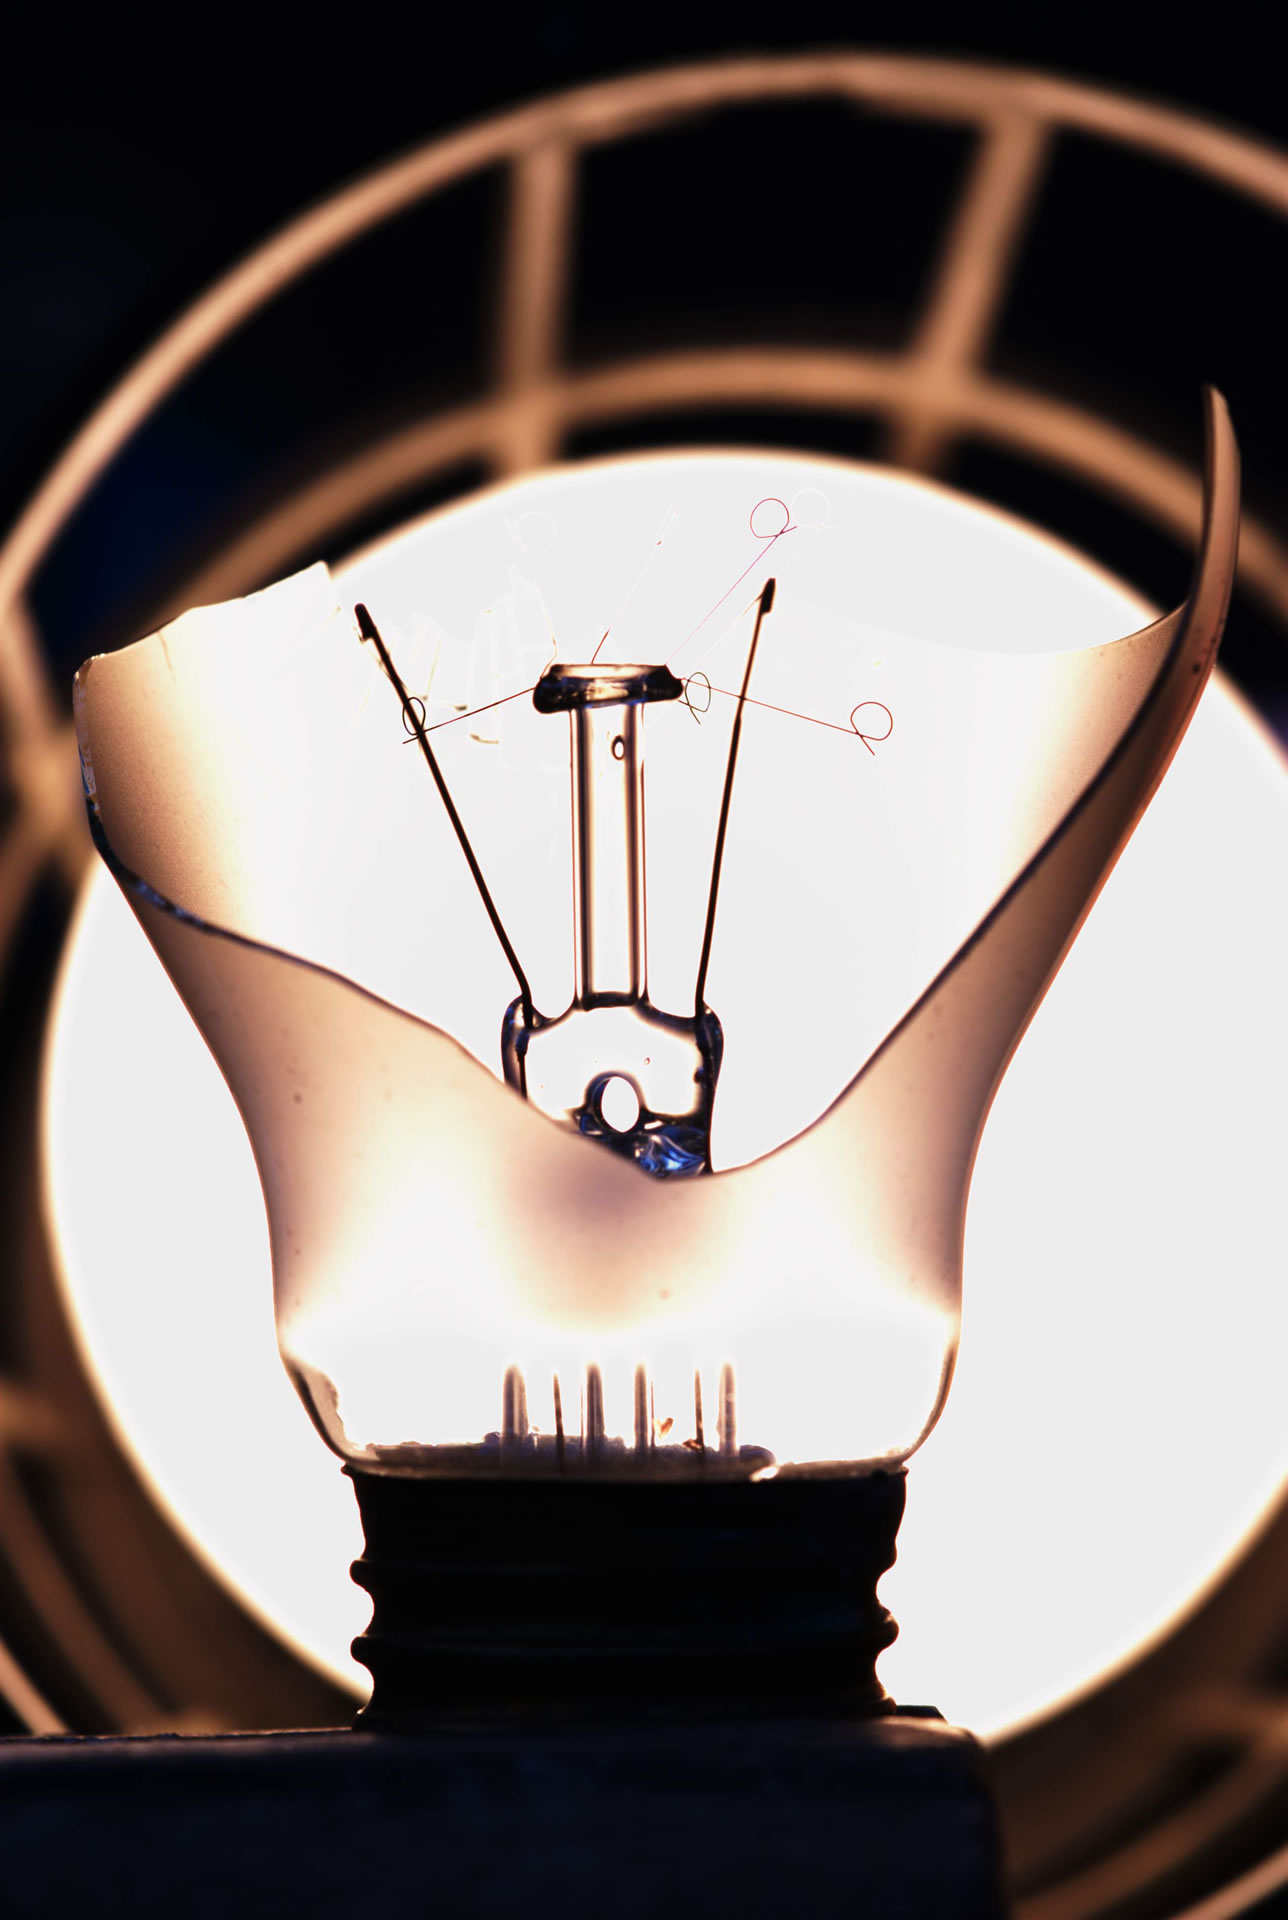 Electricity rate increase - not such a bright idea?